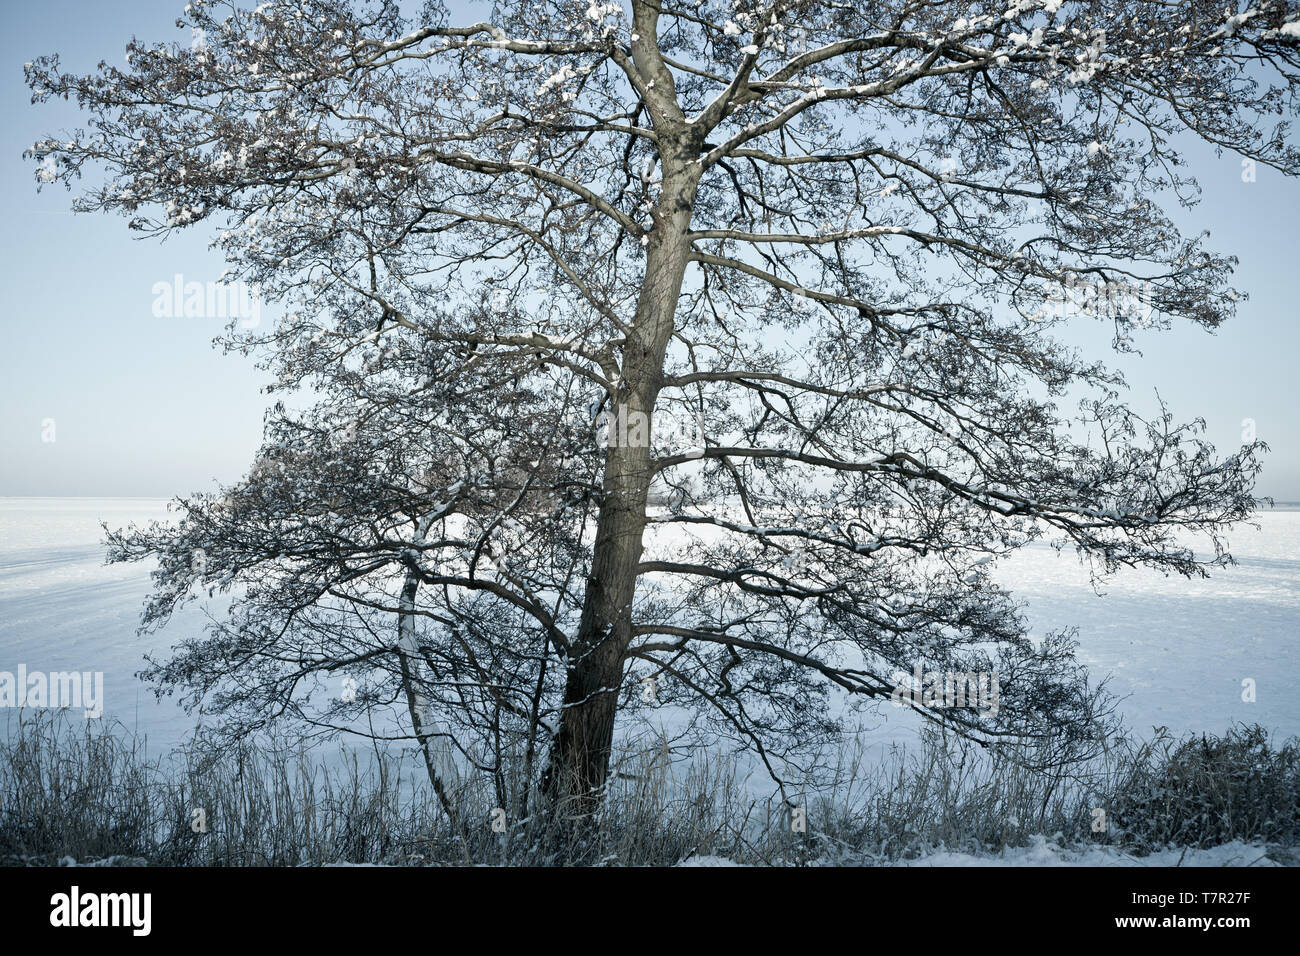 Looking at the lake from behind a snowy tree - Stock Image